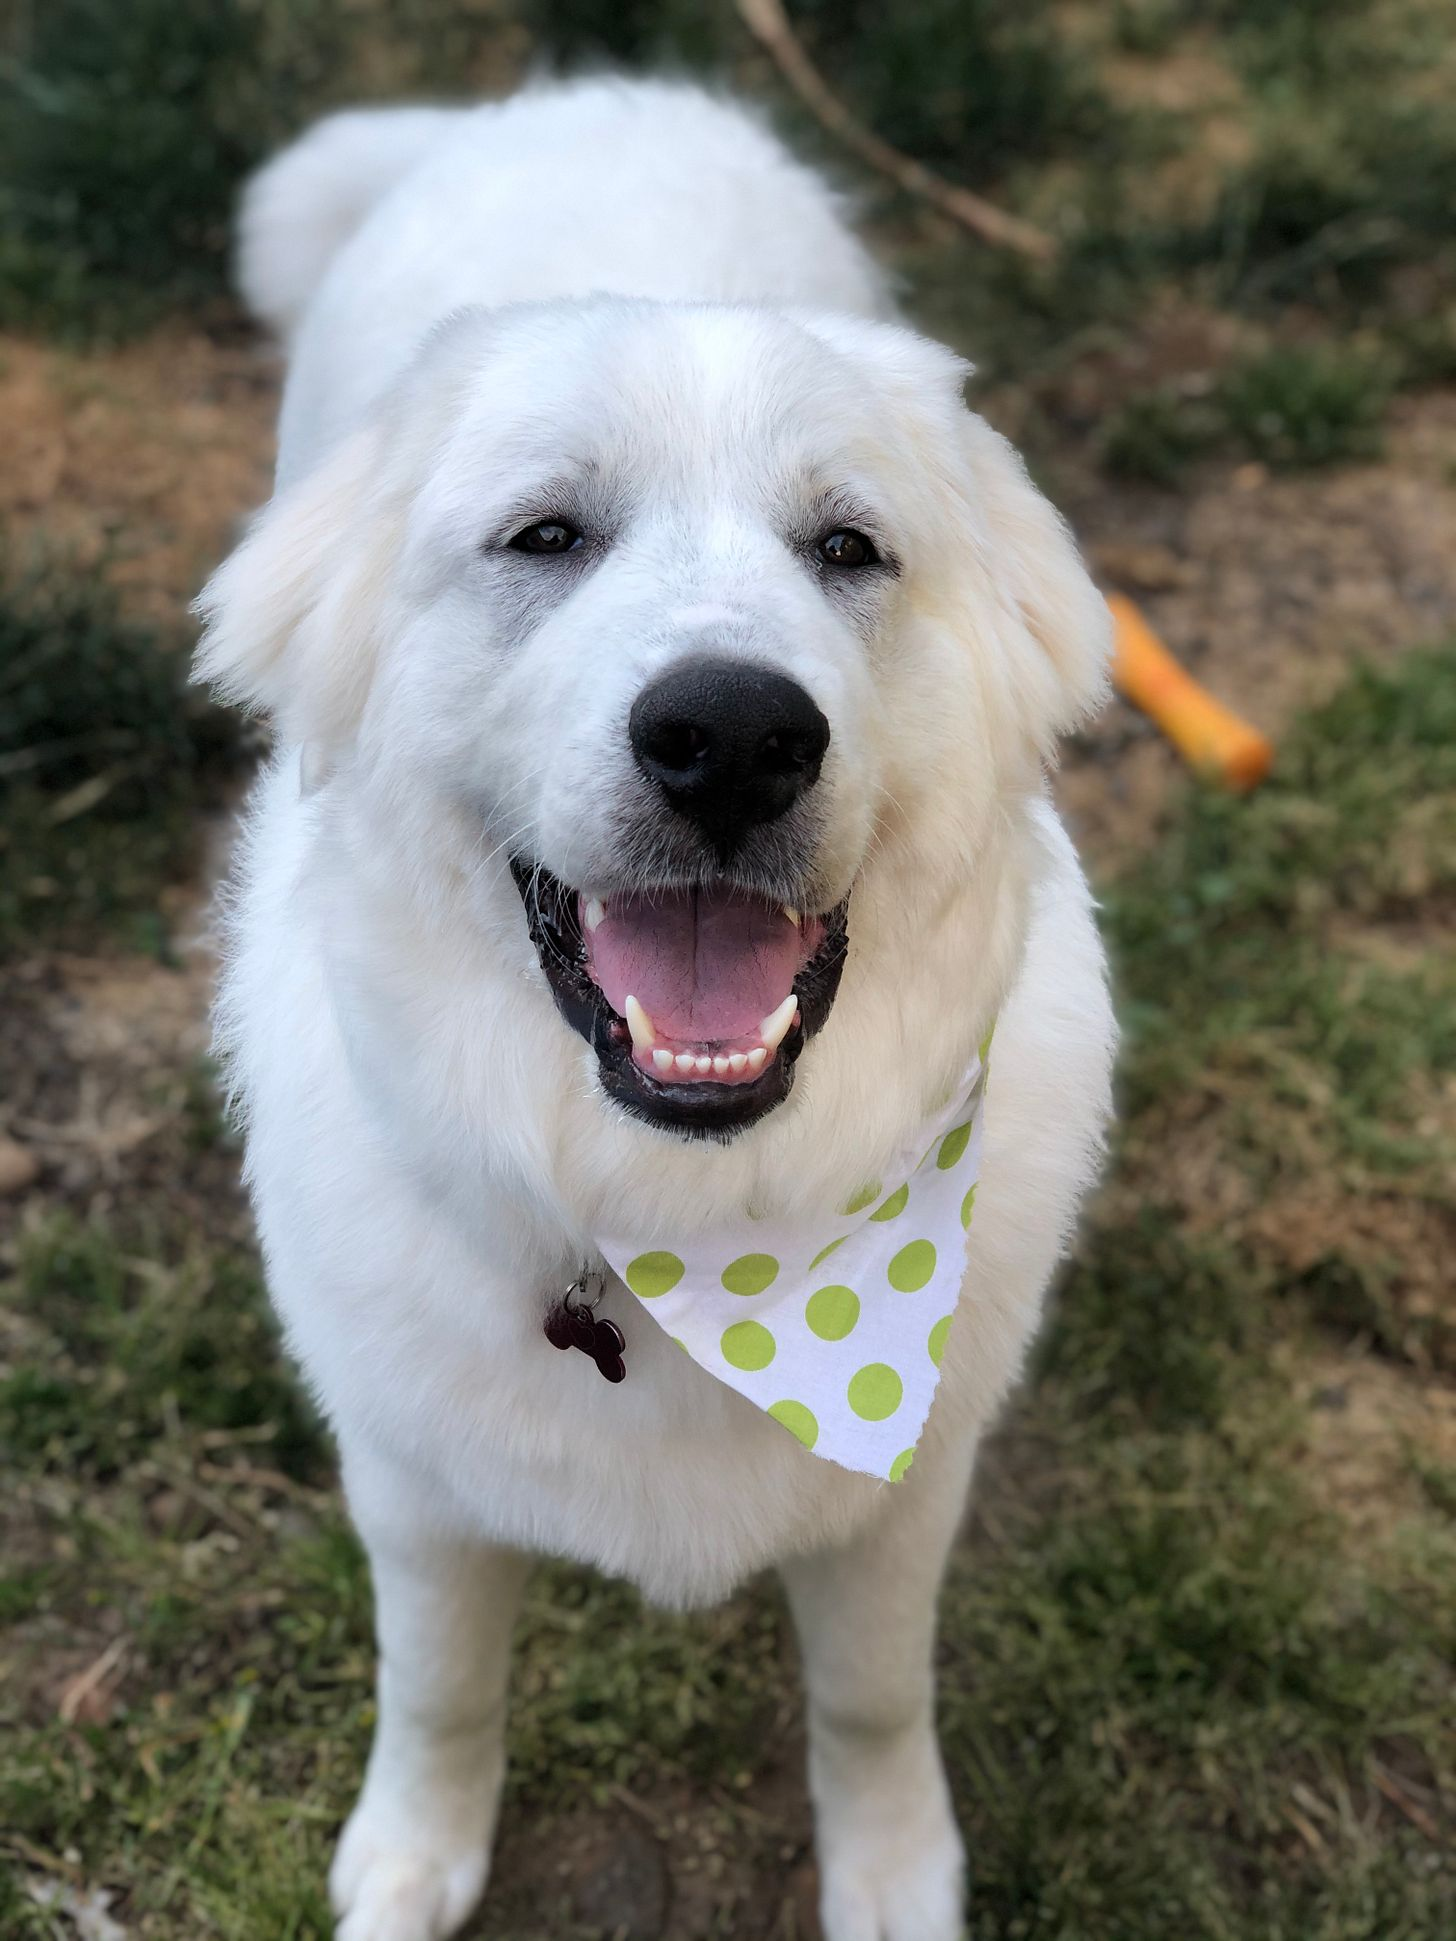 a large fluffy white Great Pyrenees puppy smiles at the camera